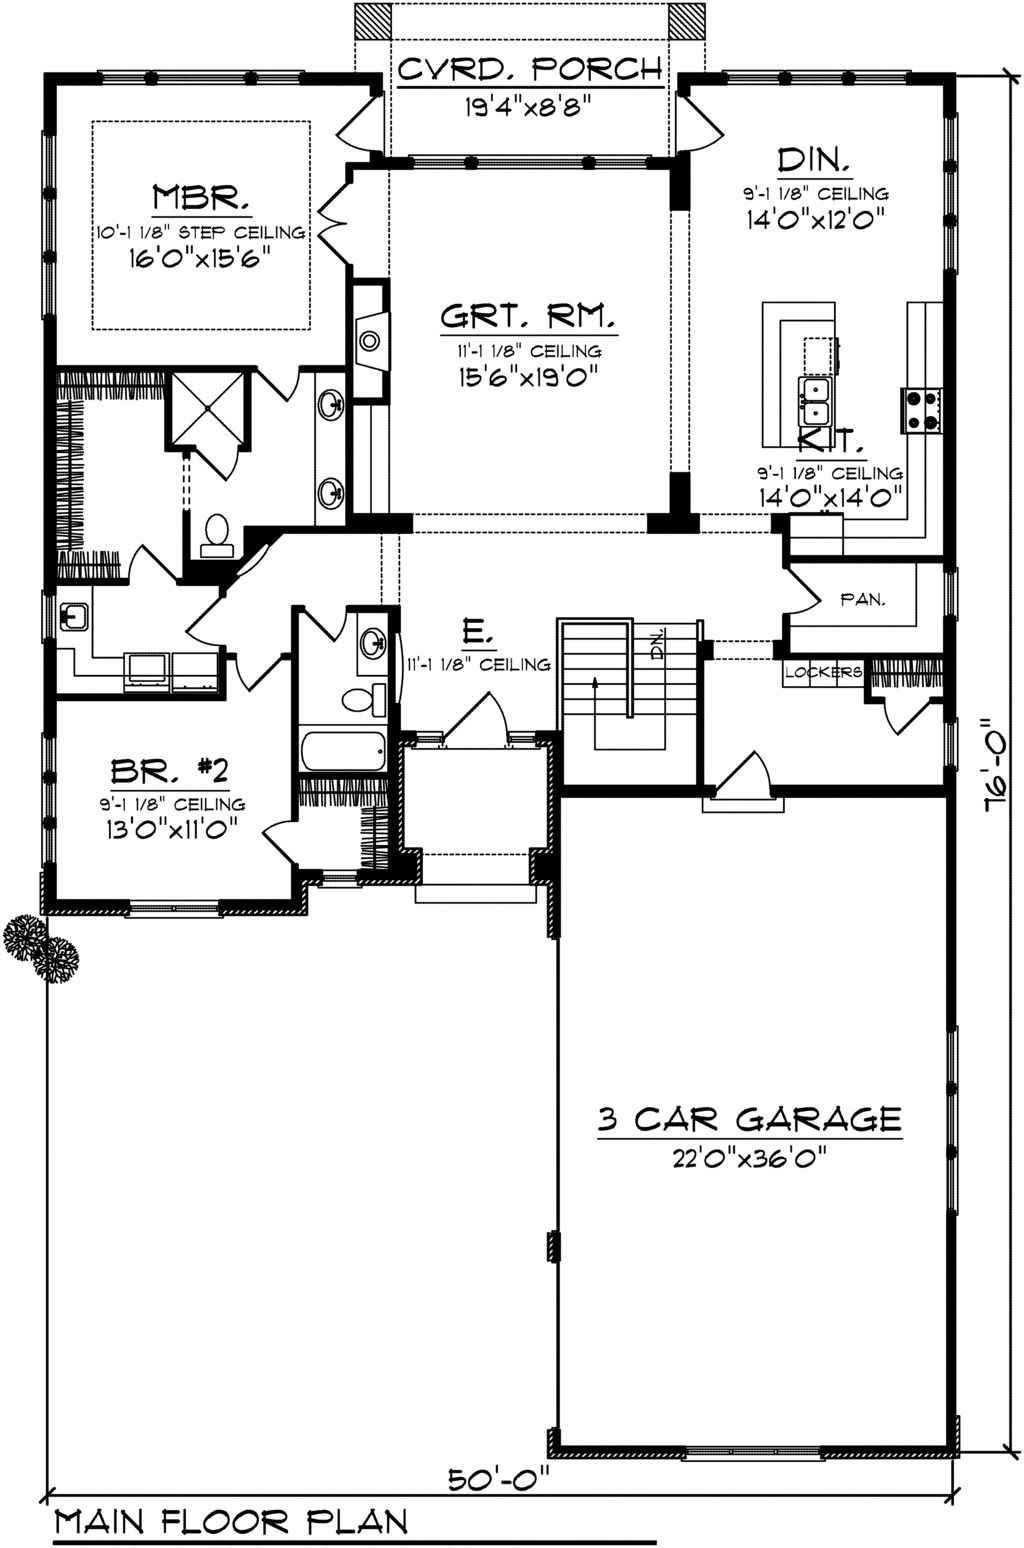 2 Bedroom Retirement House Plans Inspirational Ranch Style House Plan 2 Beds 1 5 Baths 1993 Sq Ft Plan